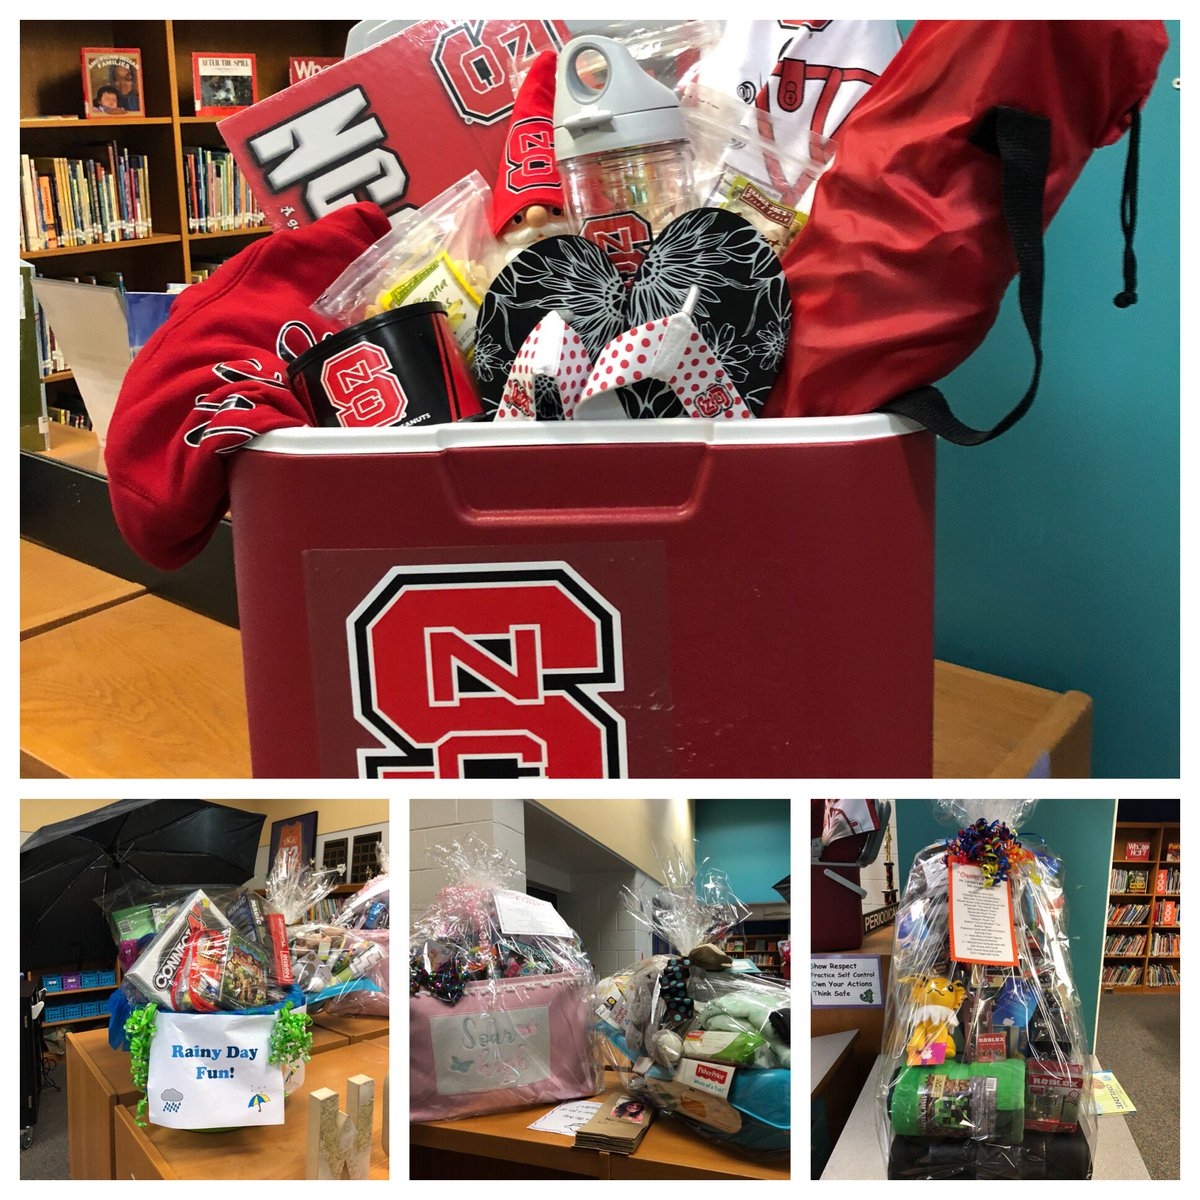 Spring festival this Friday at 5:30pm! Check out these baskets you can win in the raffle! #sports #state #legos #rainyday #pets #spa #carolina #familynight #videogames<br>http://pic.twitter.com/o6KLnYotHh